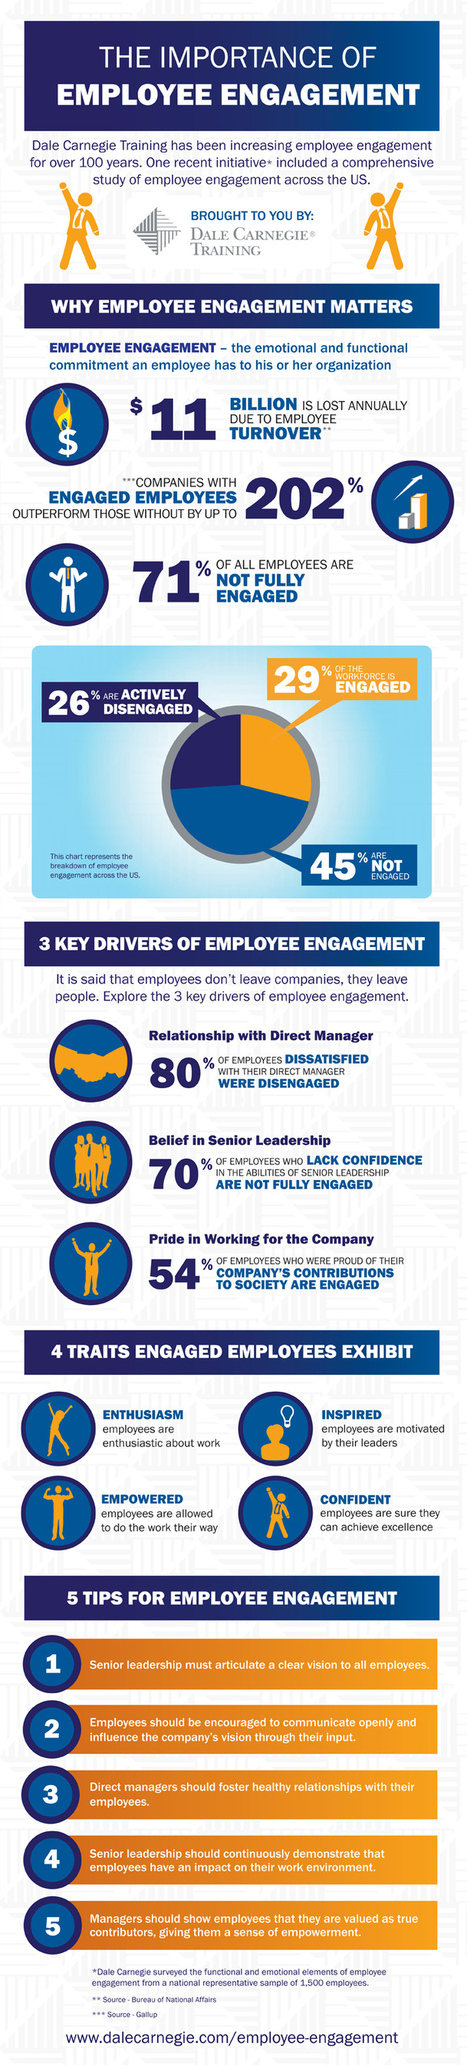 How Important is Employee Engagement? [INFOGRAPHIC] | Millennials in the Workplace | Scoop.it